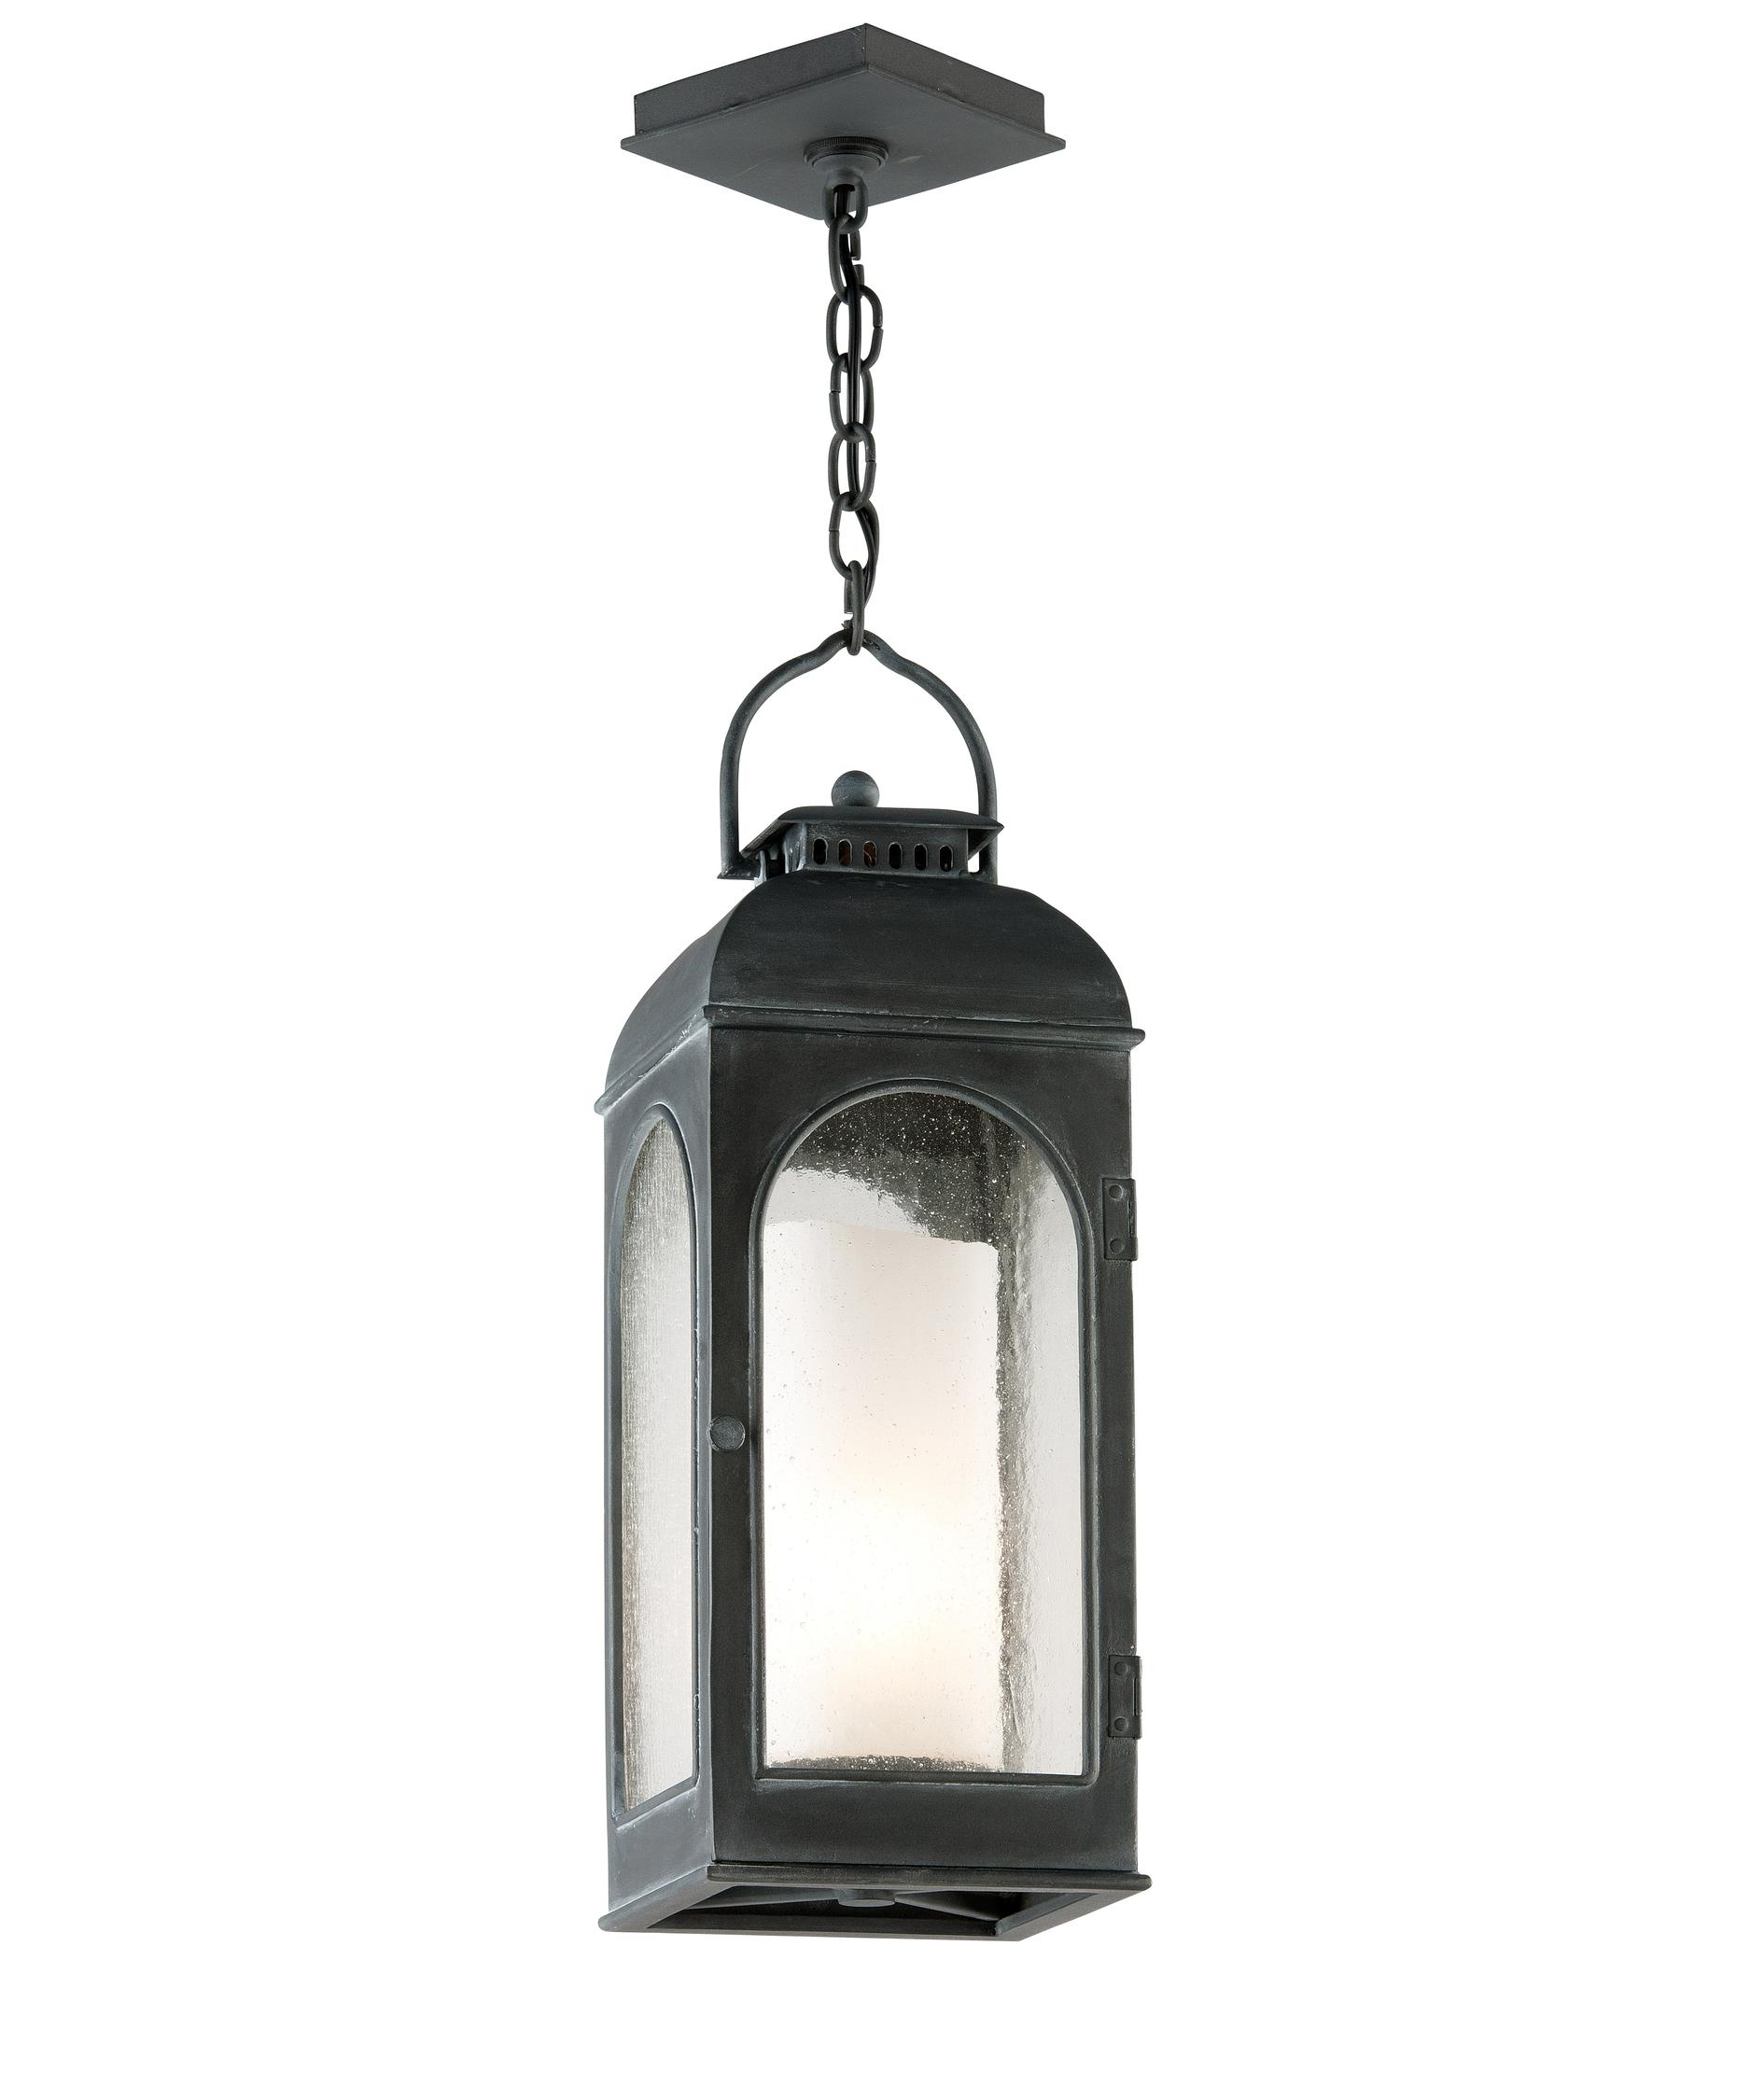 Widely Used Troy Lighting F3287 Derby 8 Inch Wide 1 Light Outdoor Hanging Pertaining To Outdoor Hanging Lanterns For Candles (View 4 of 20)